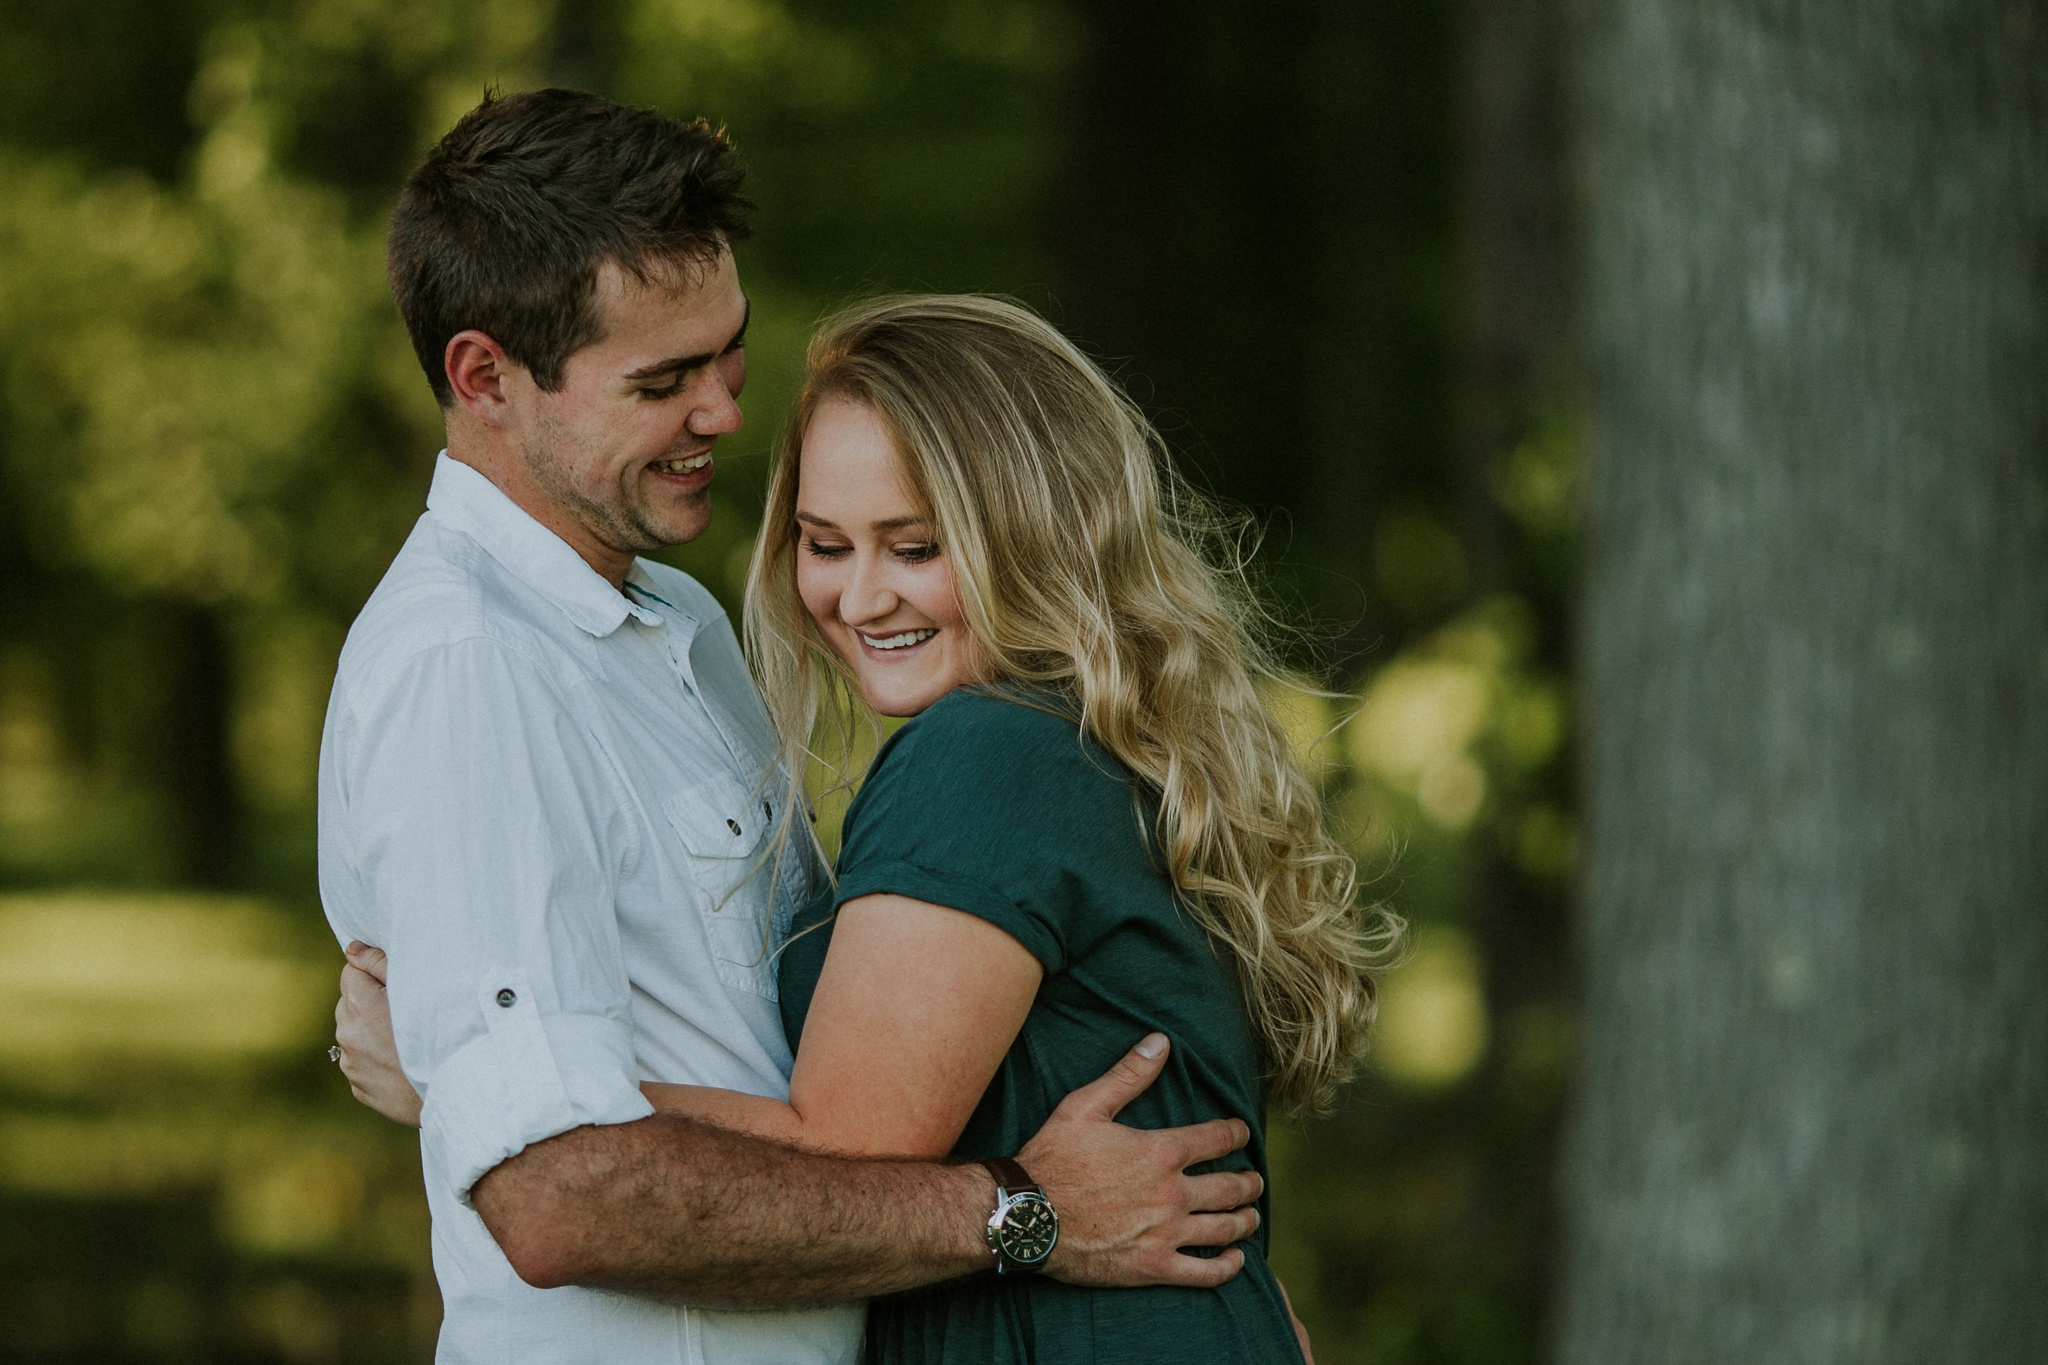 Louisville New Albany Engagement Photographer_0009.jpg